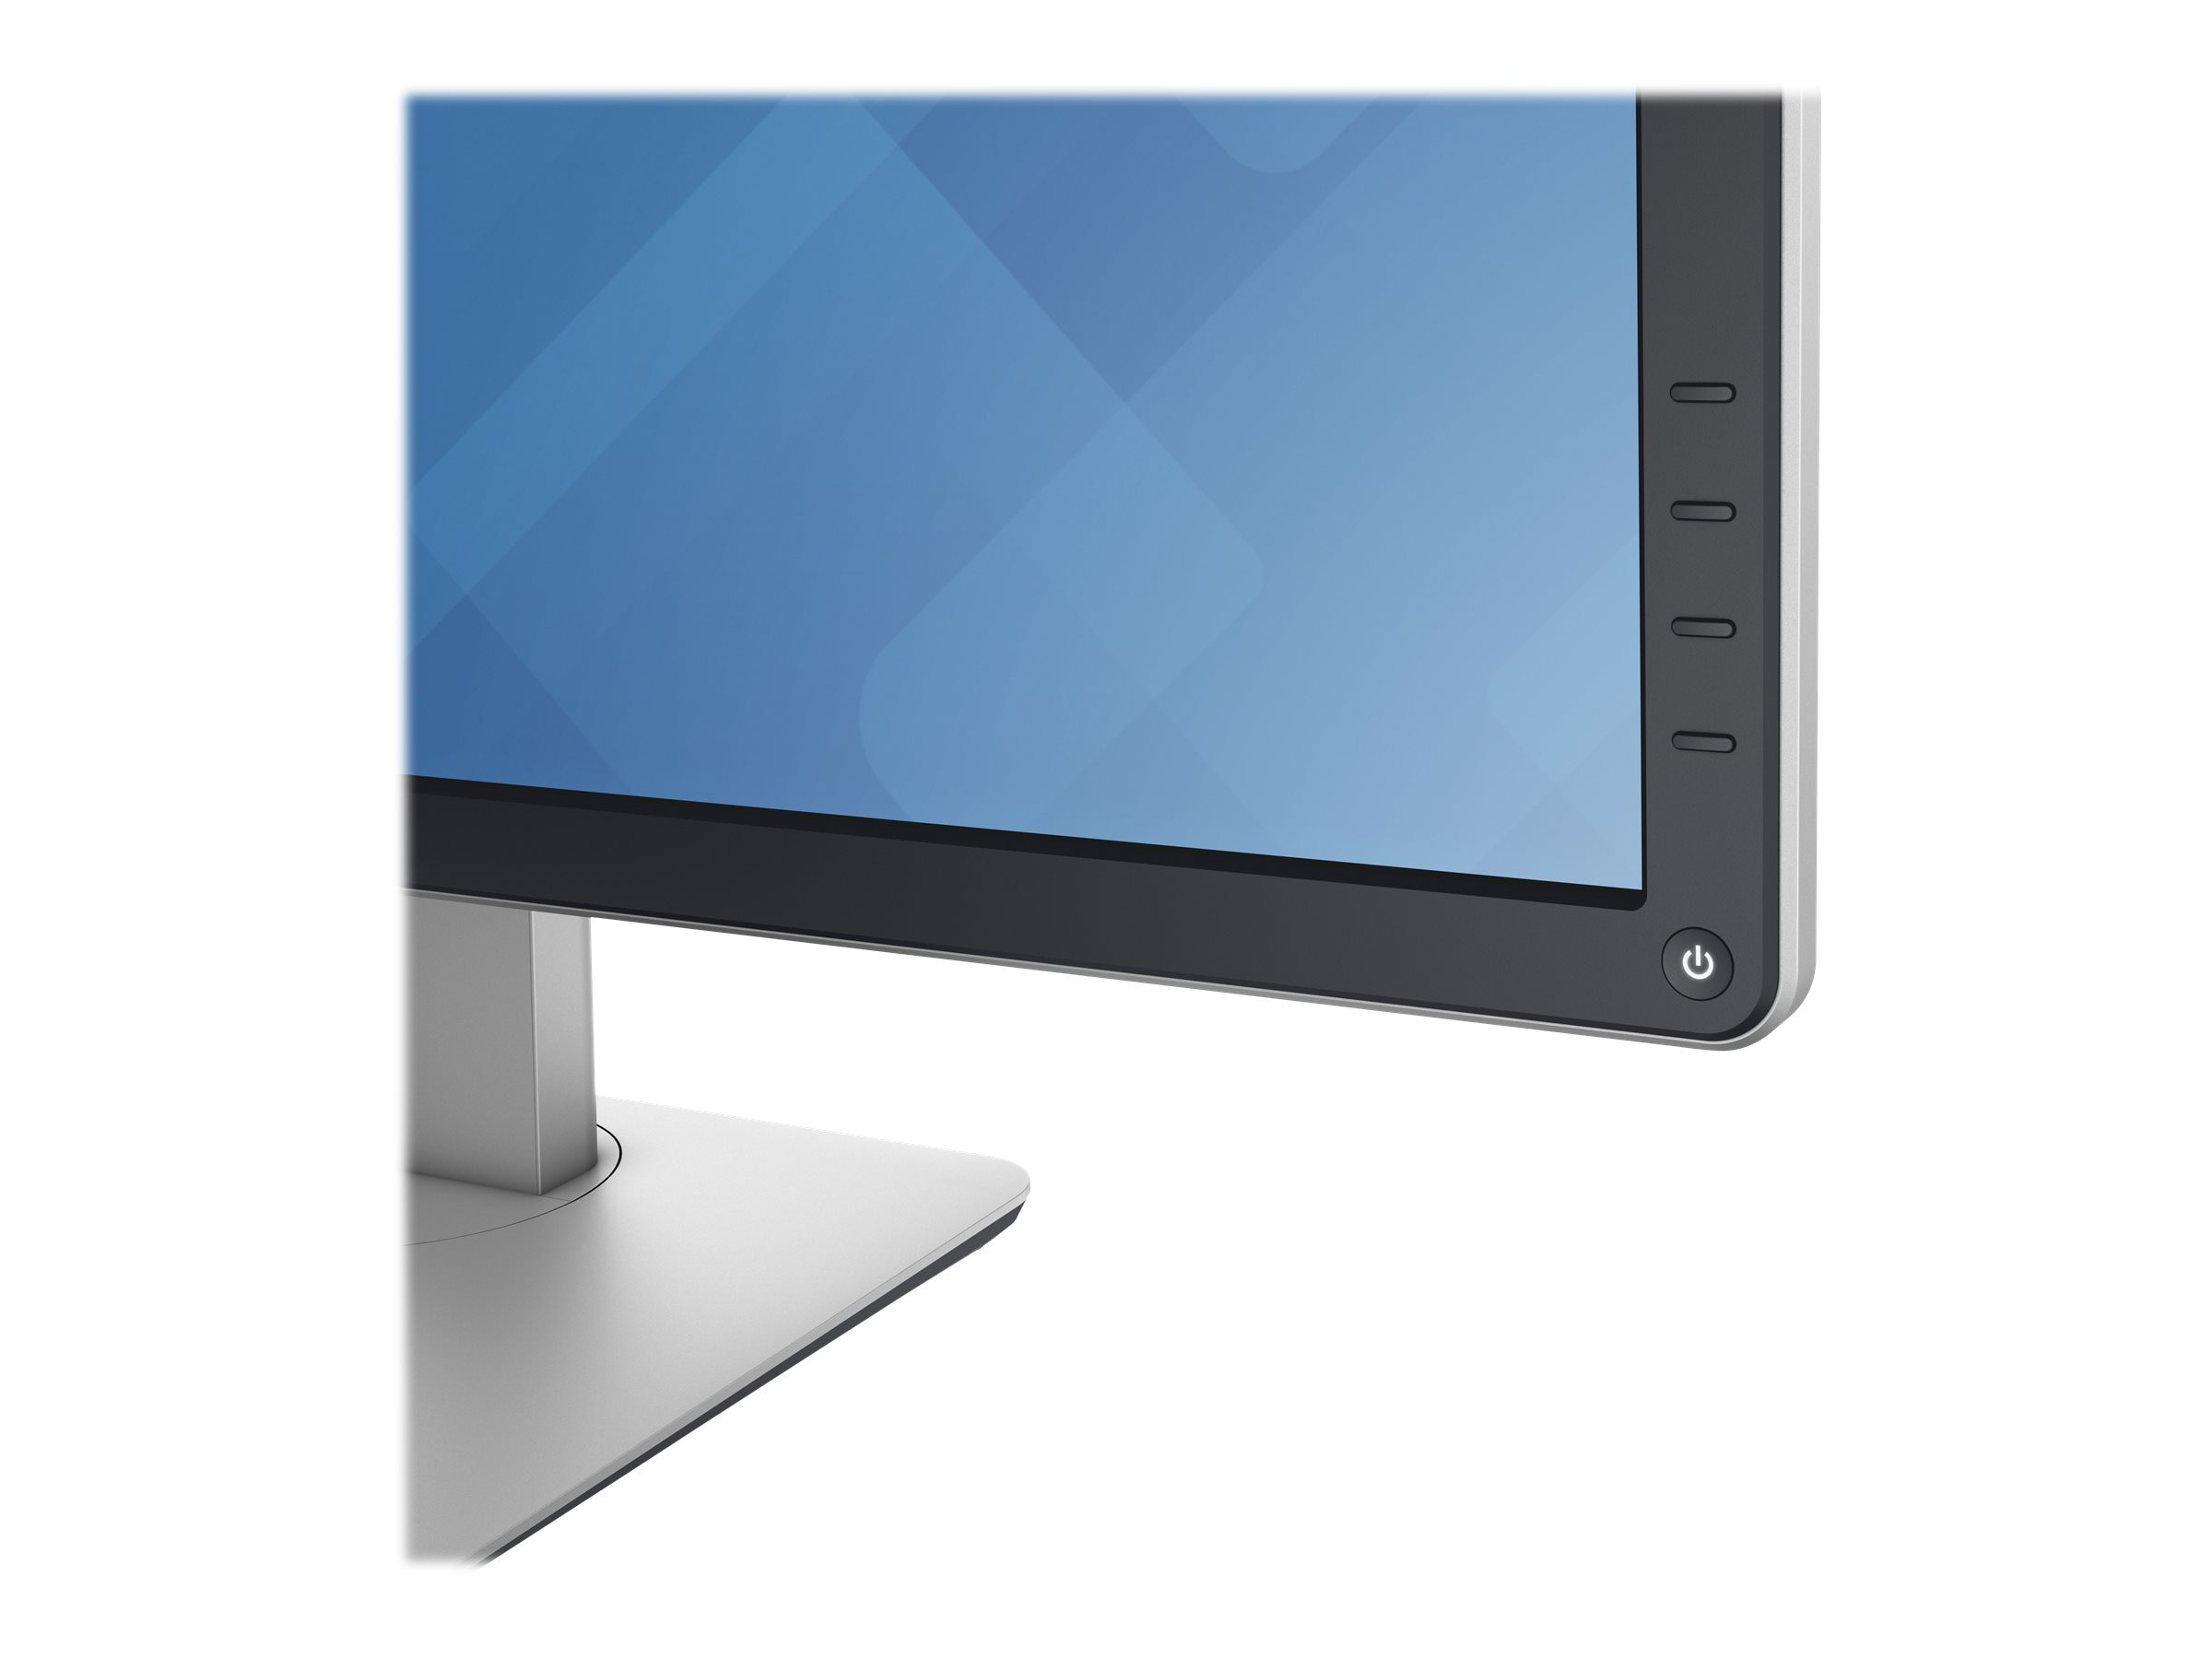 Dell 27 P2714H Full HD LED-LCD Monitor, Black, P2714H